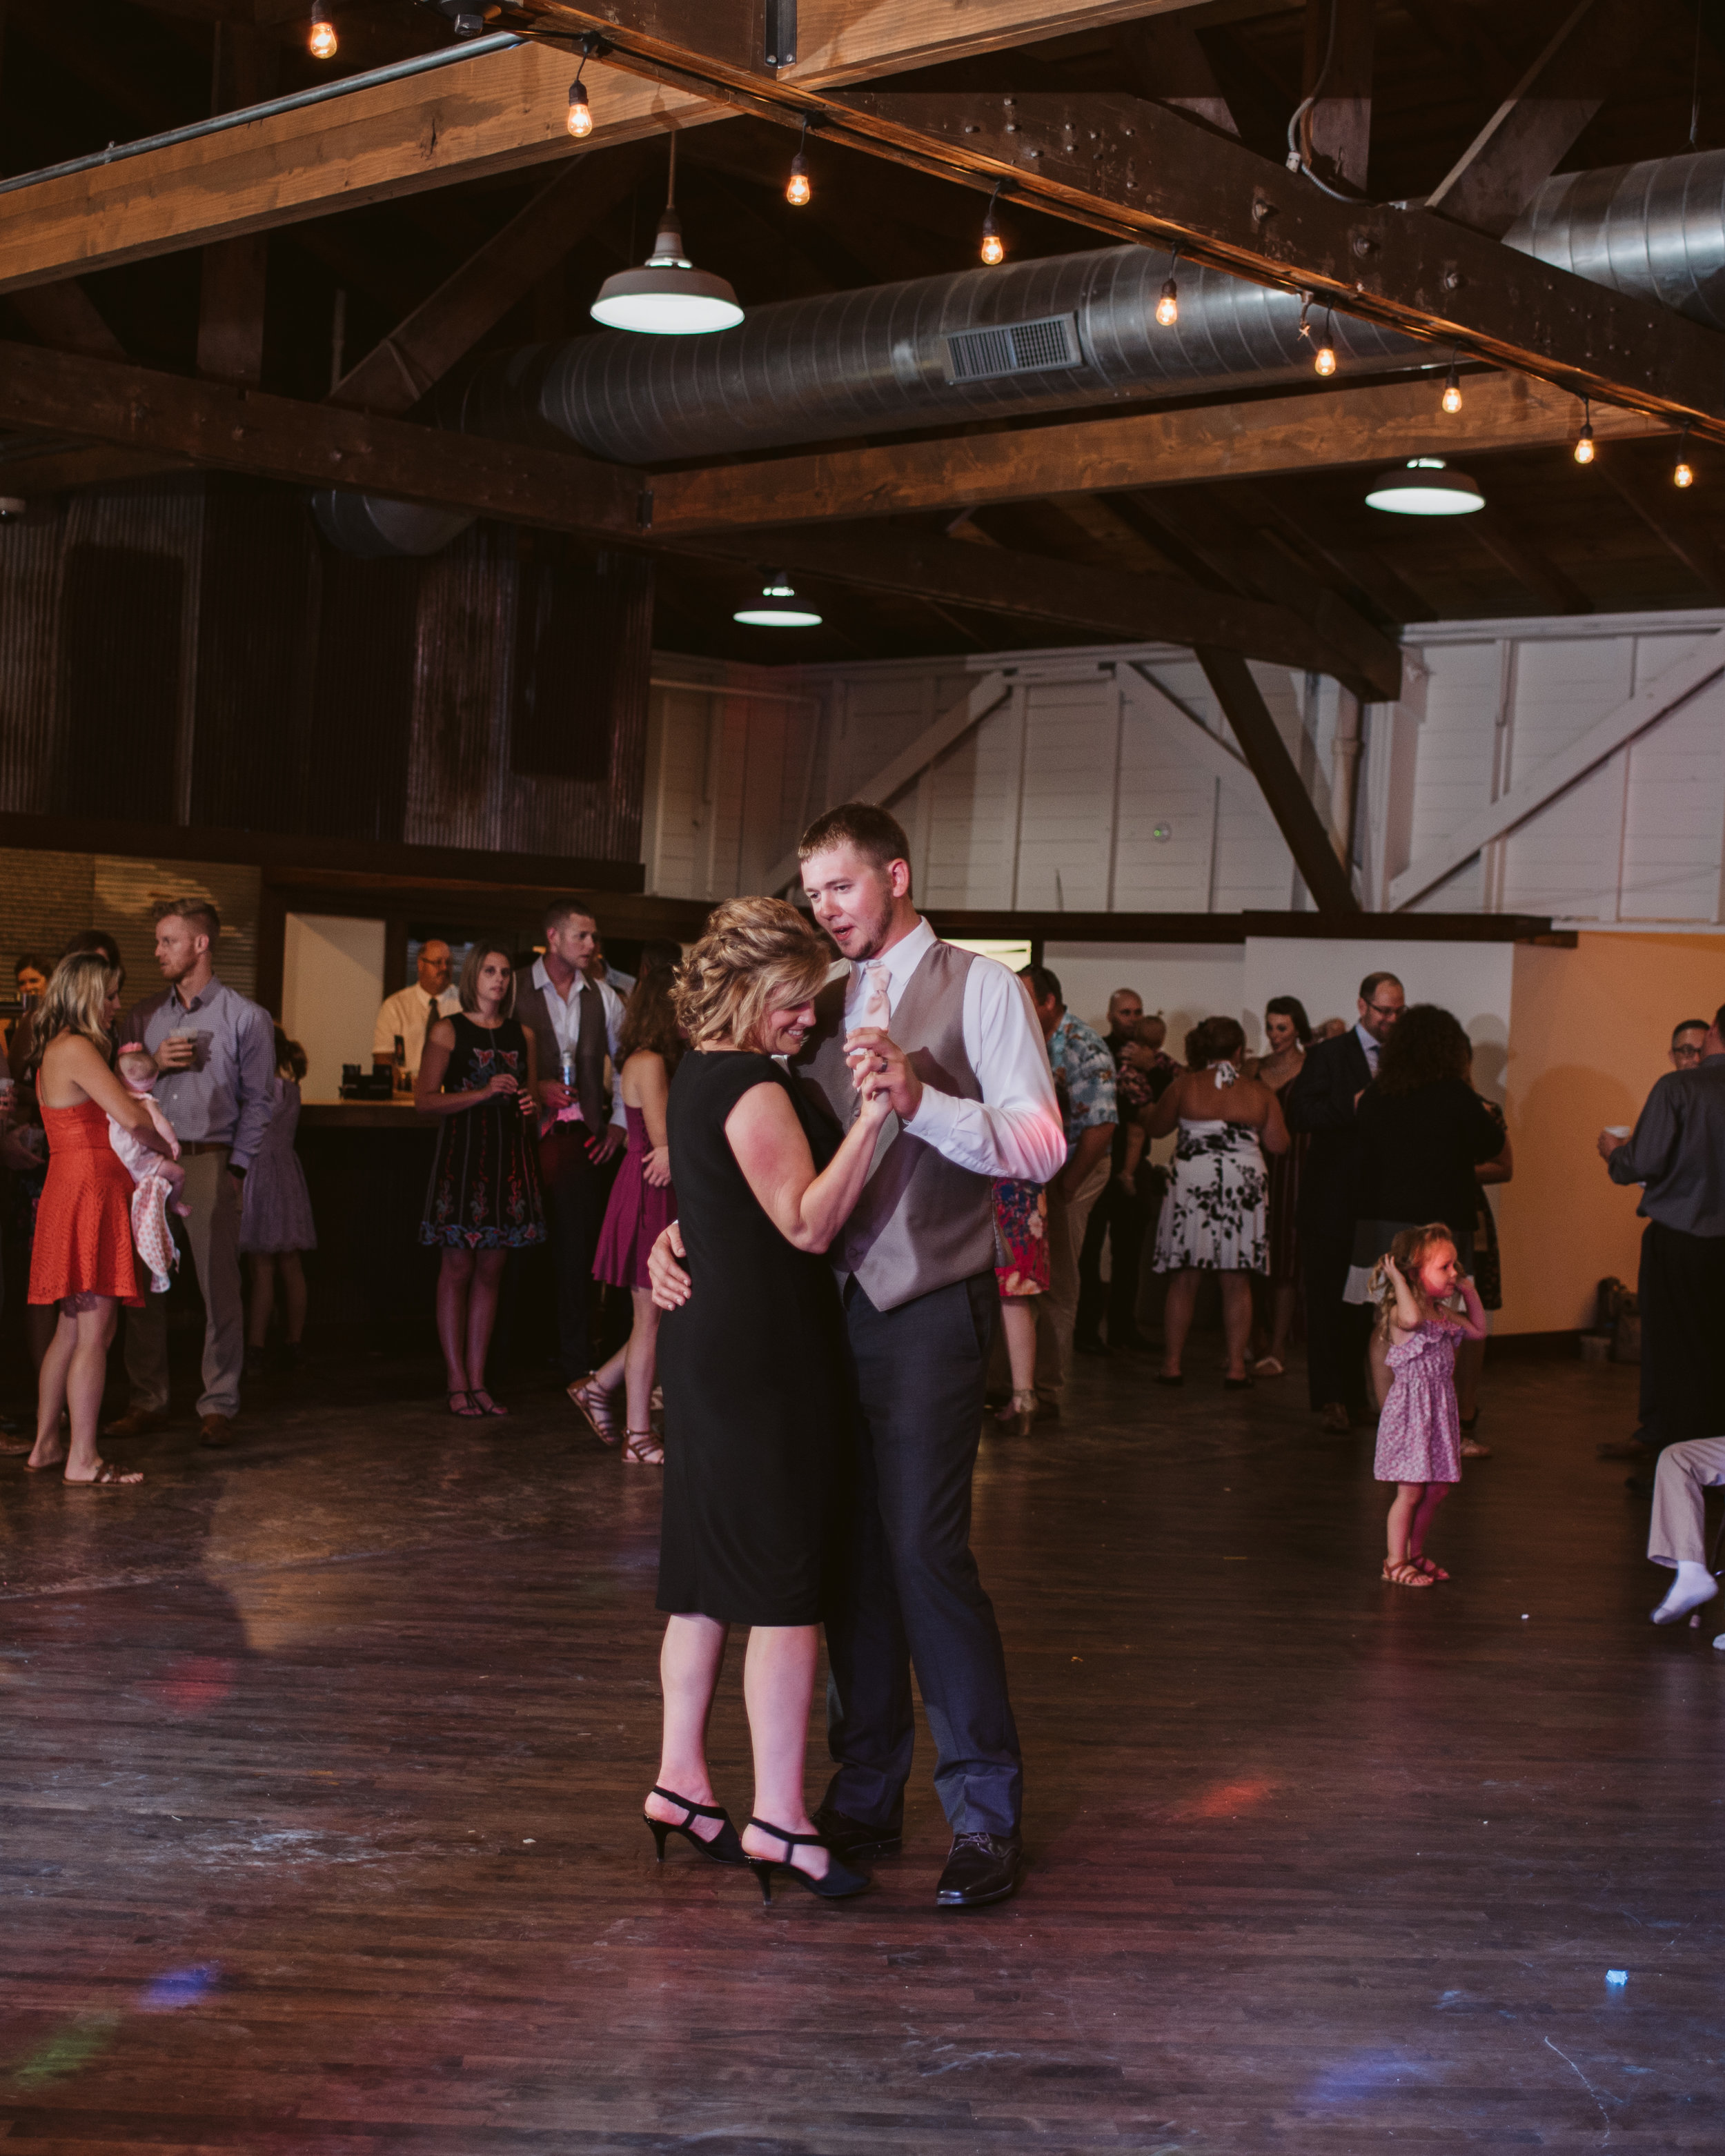 Angell_Park_Pavilion_Wedding_Gavyn_Taylor_Photo-838.jpg